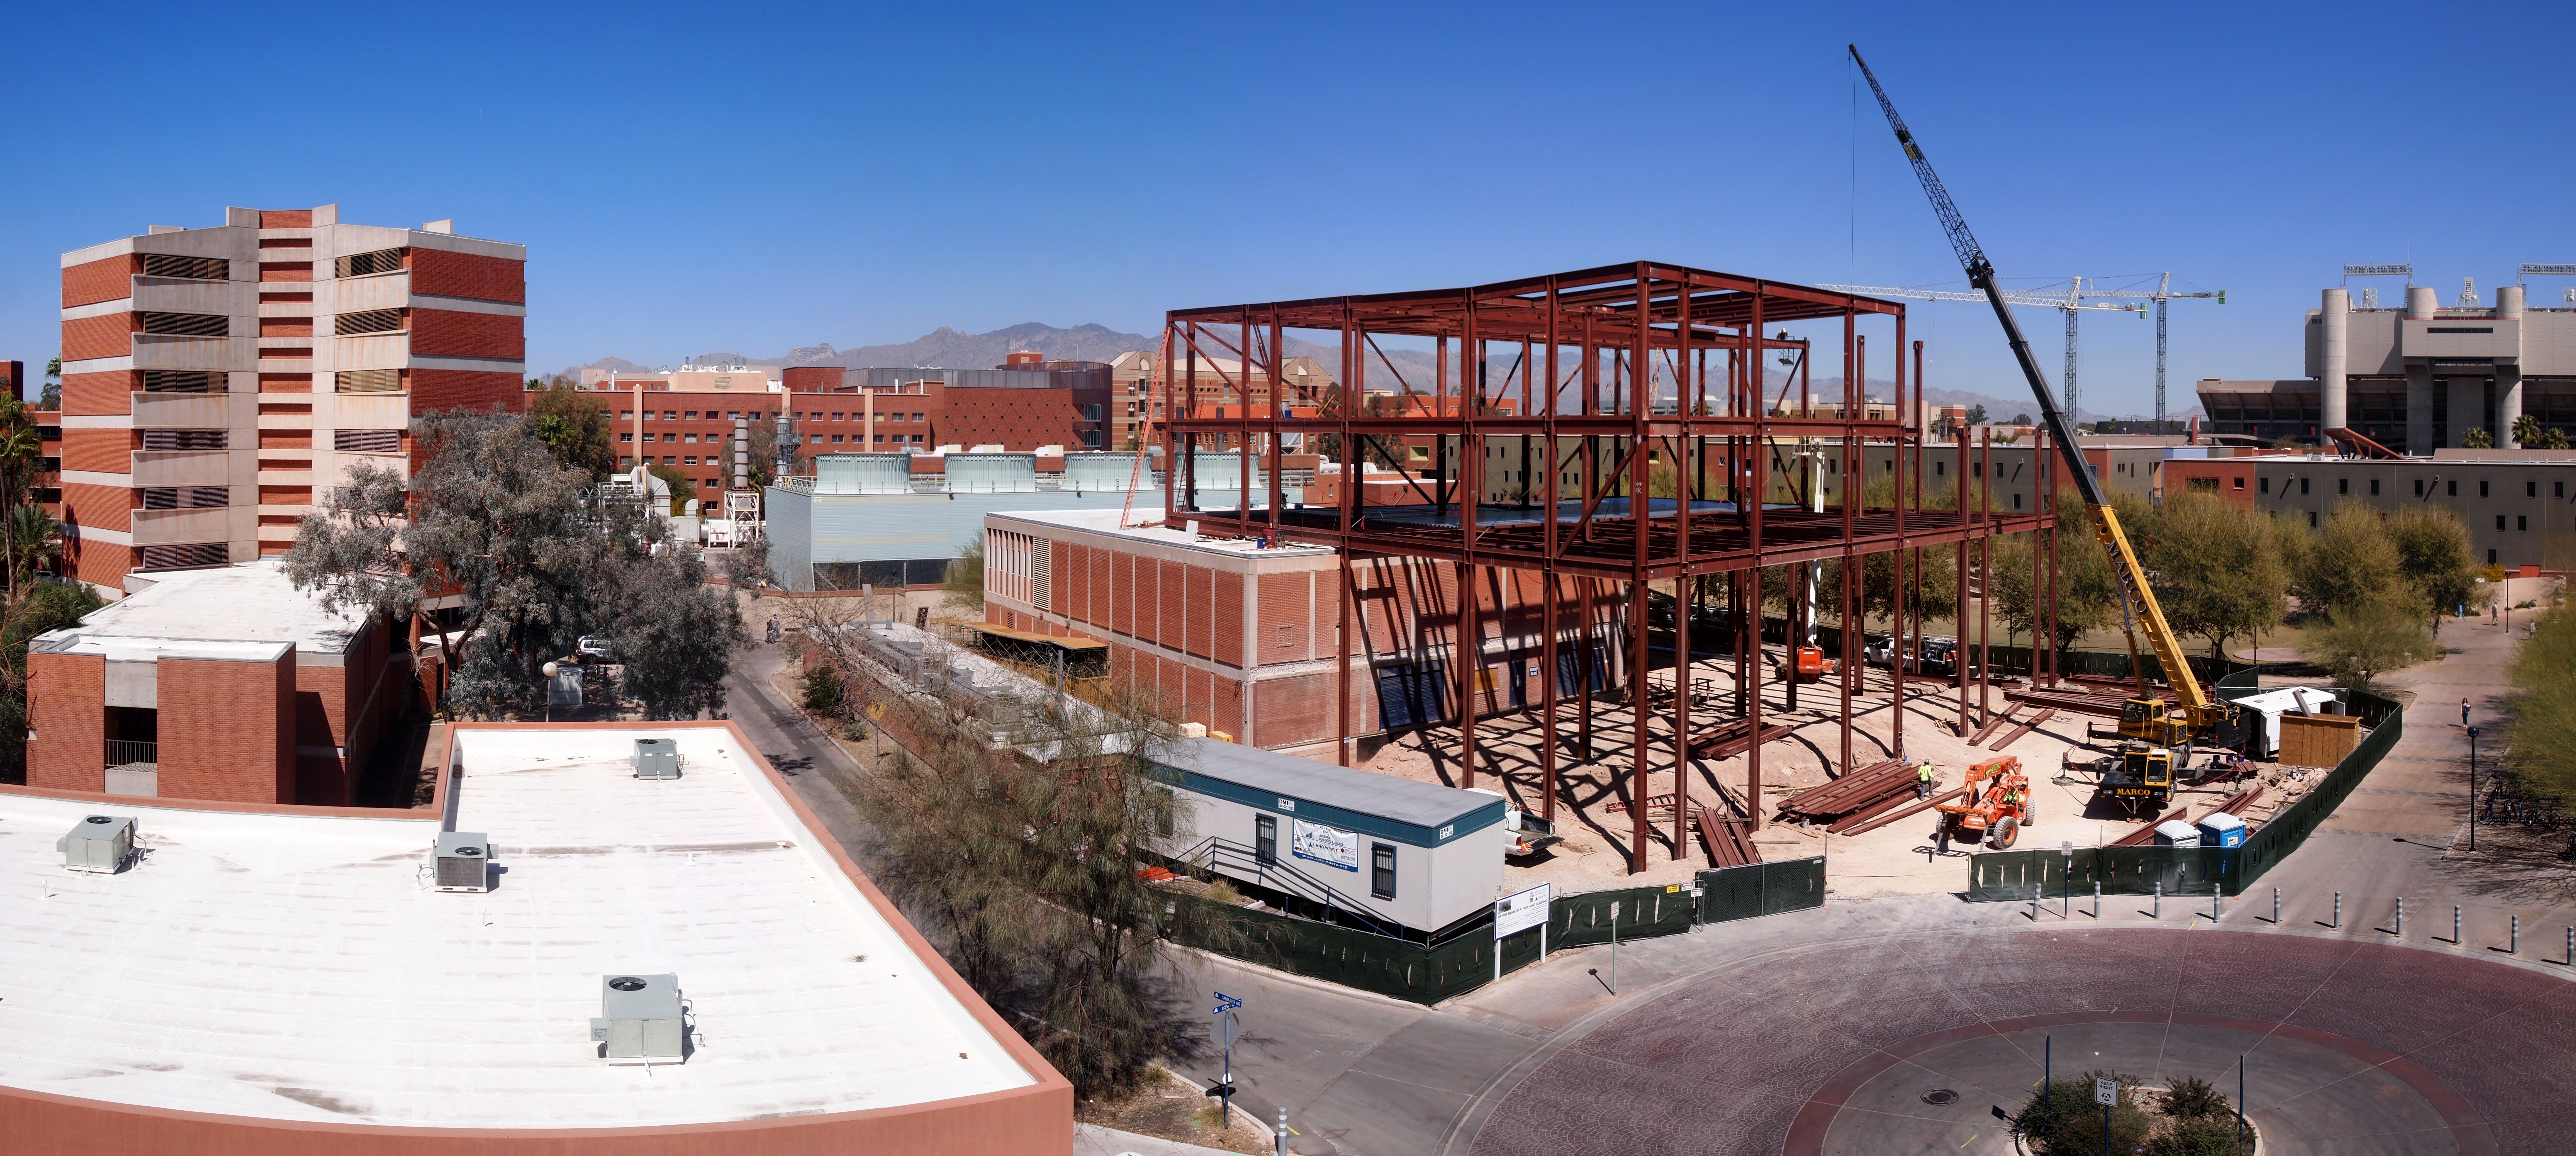 panoramic view of the construction site 13 - House Building Sites